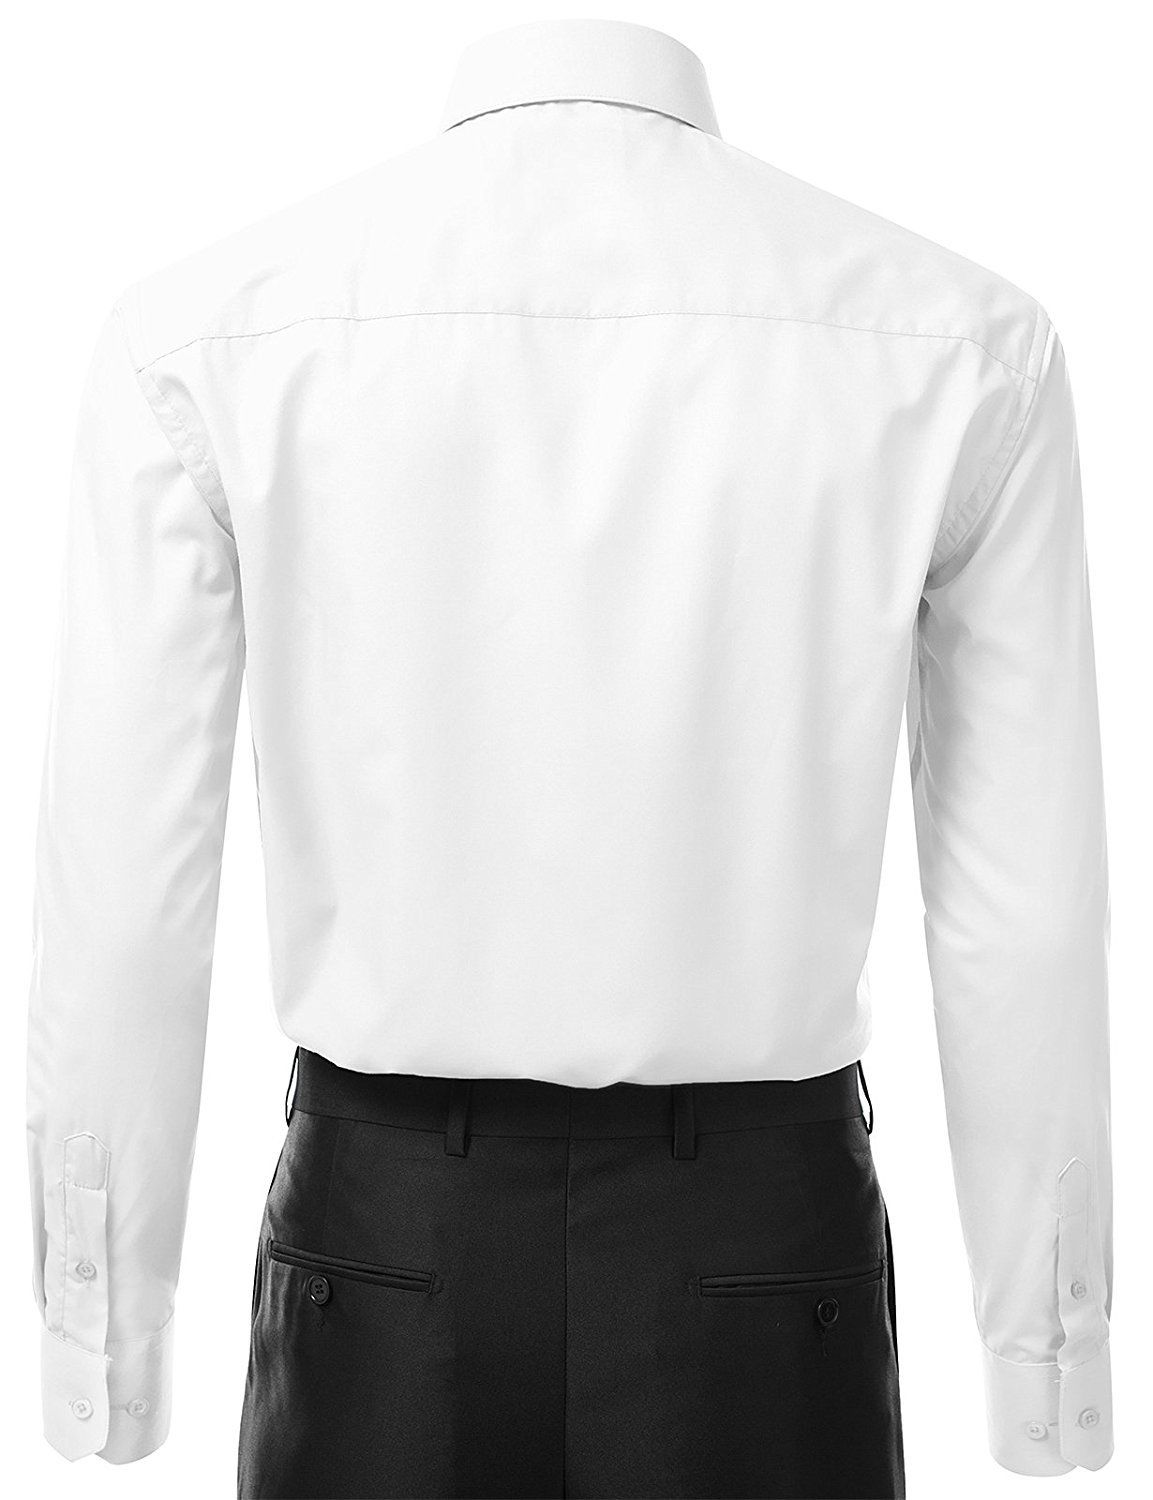 Berlioni-Italy-Men-039-s-Premium-Classic-French-Convertible-Cuff-Solid-Dress-Shirt thumbnail 69